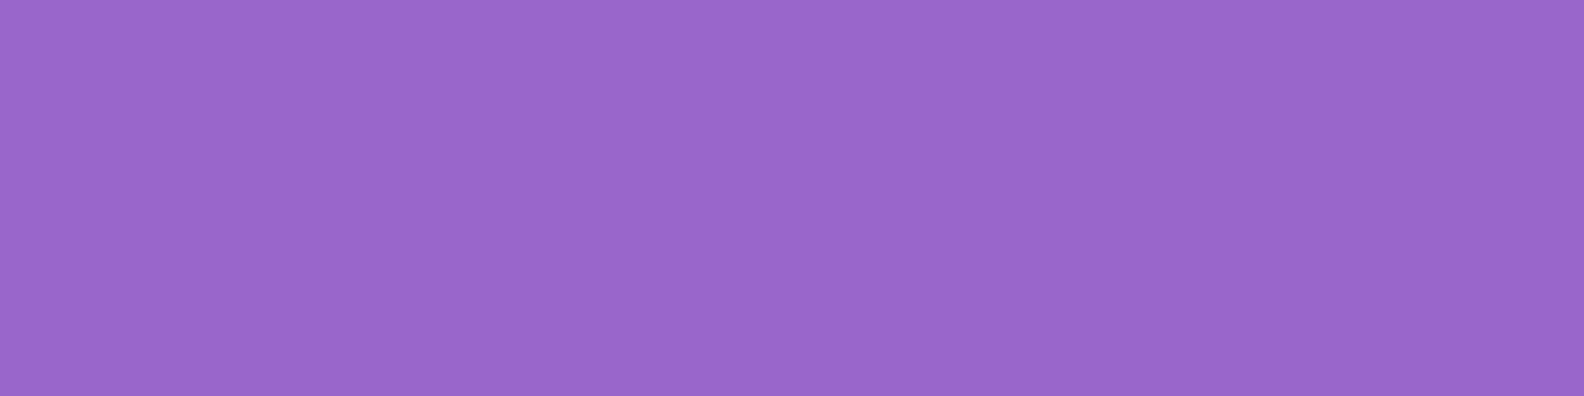 1584x396 Amethyst Solid Color Background